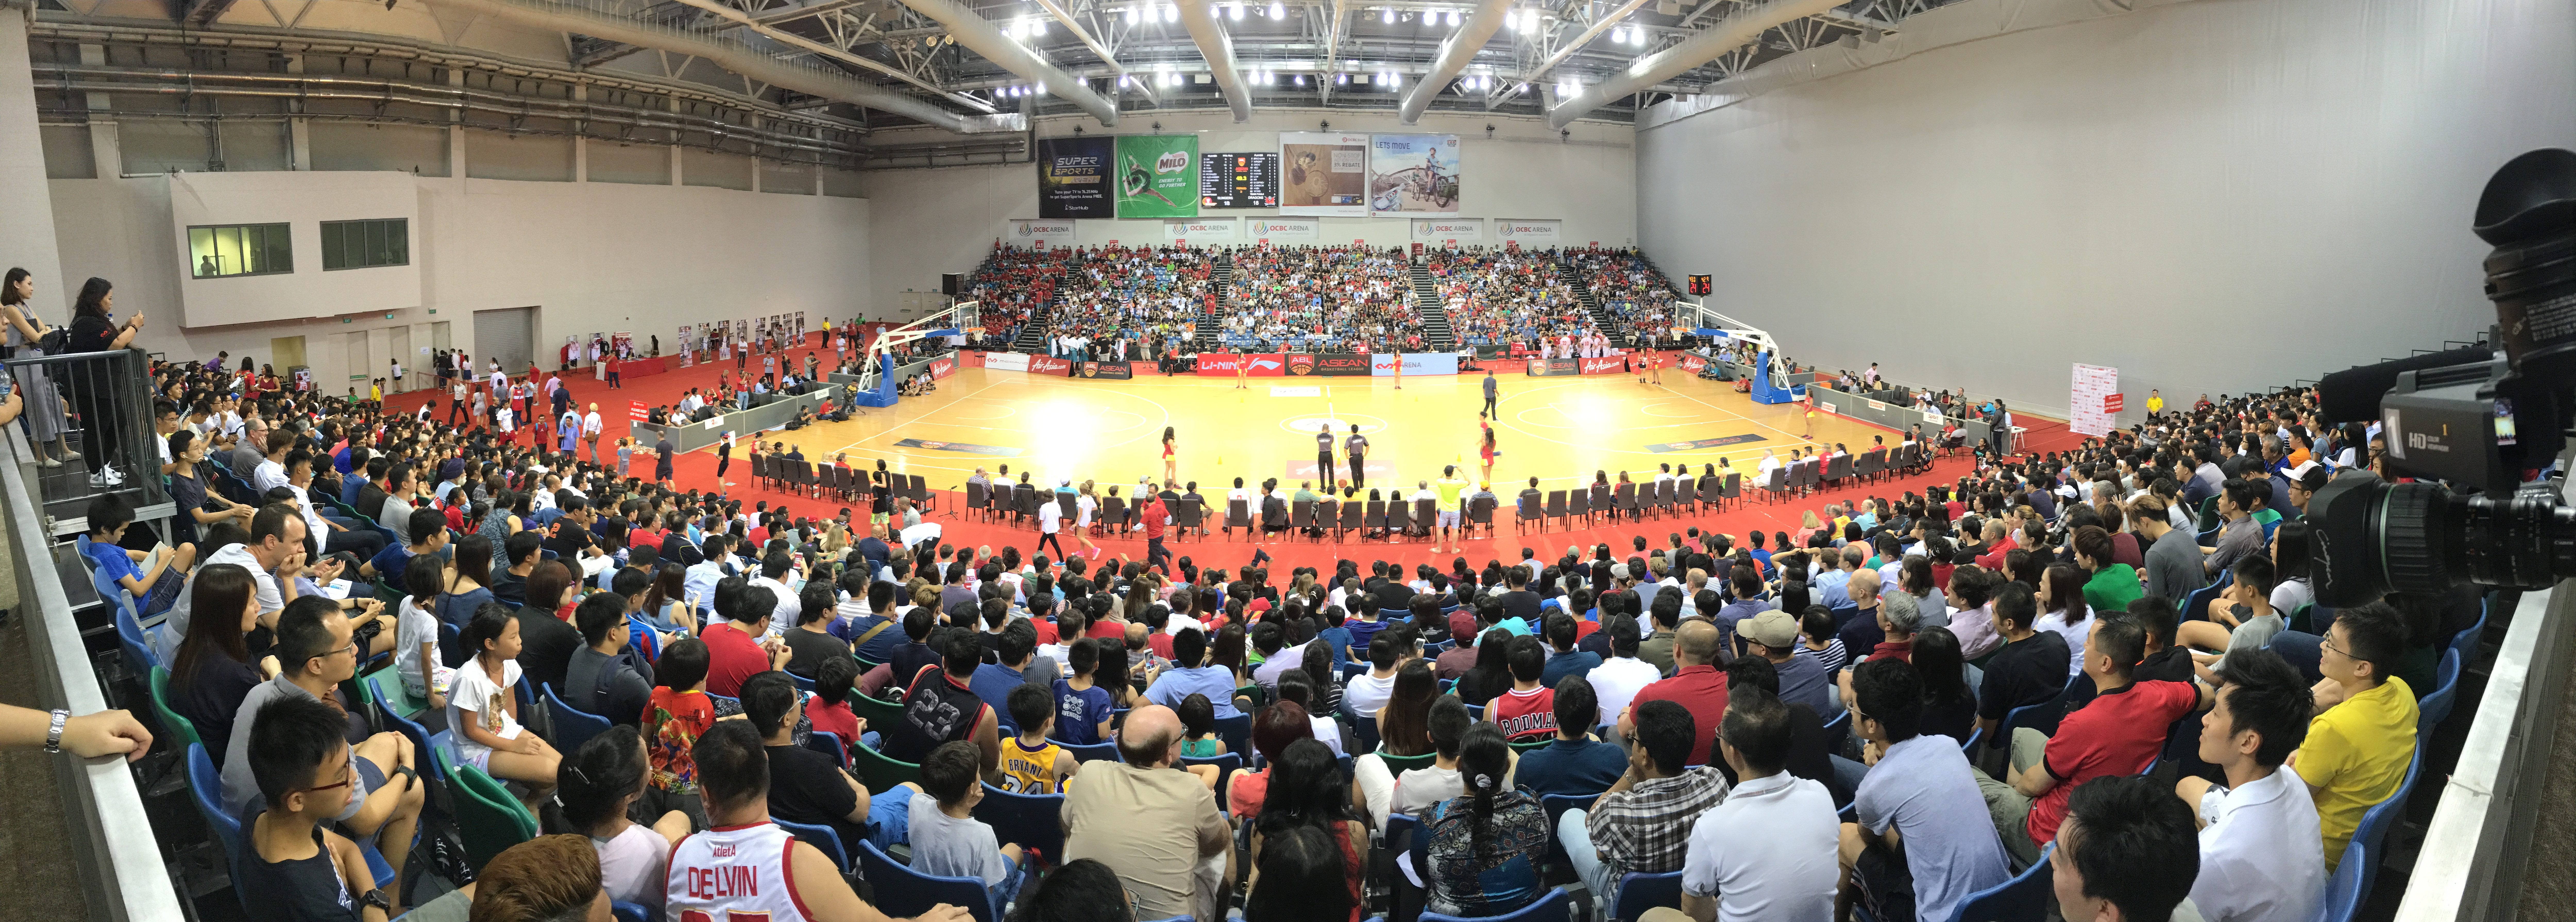 Full-House-2016-ABL-Final-Series-OCBC-Arena